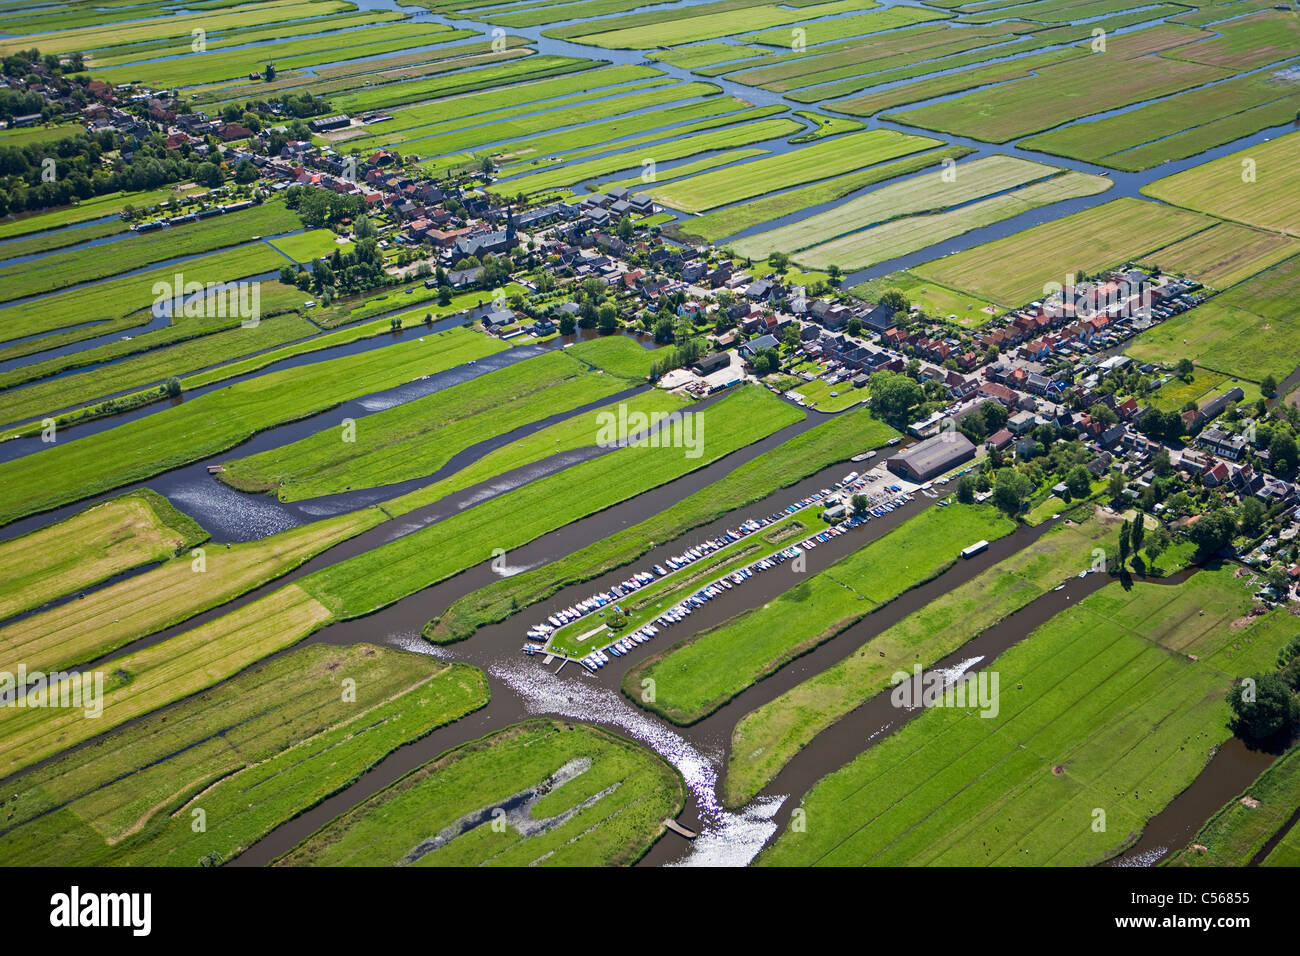 Netherlands, Wormer, Polder with village and farmland and mooring place with small boats. Aerial. - Stock Image